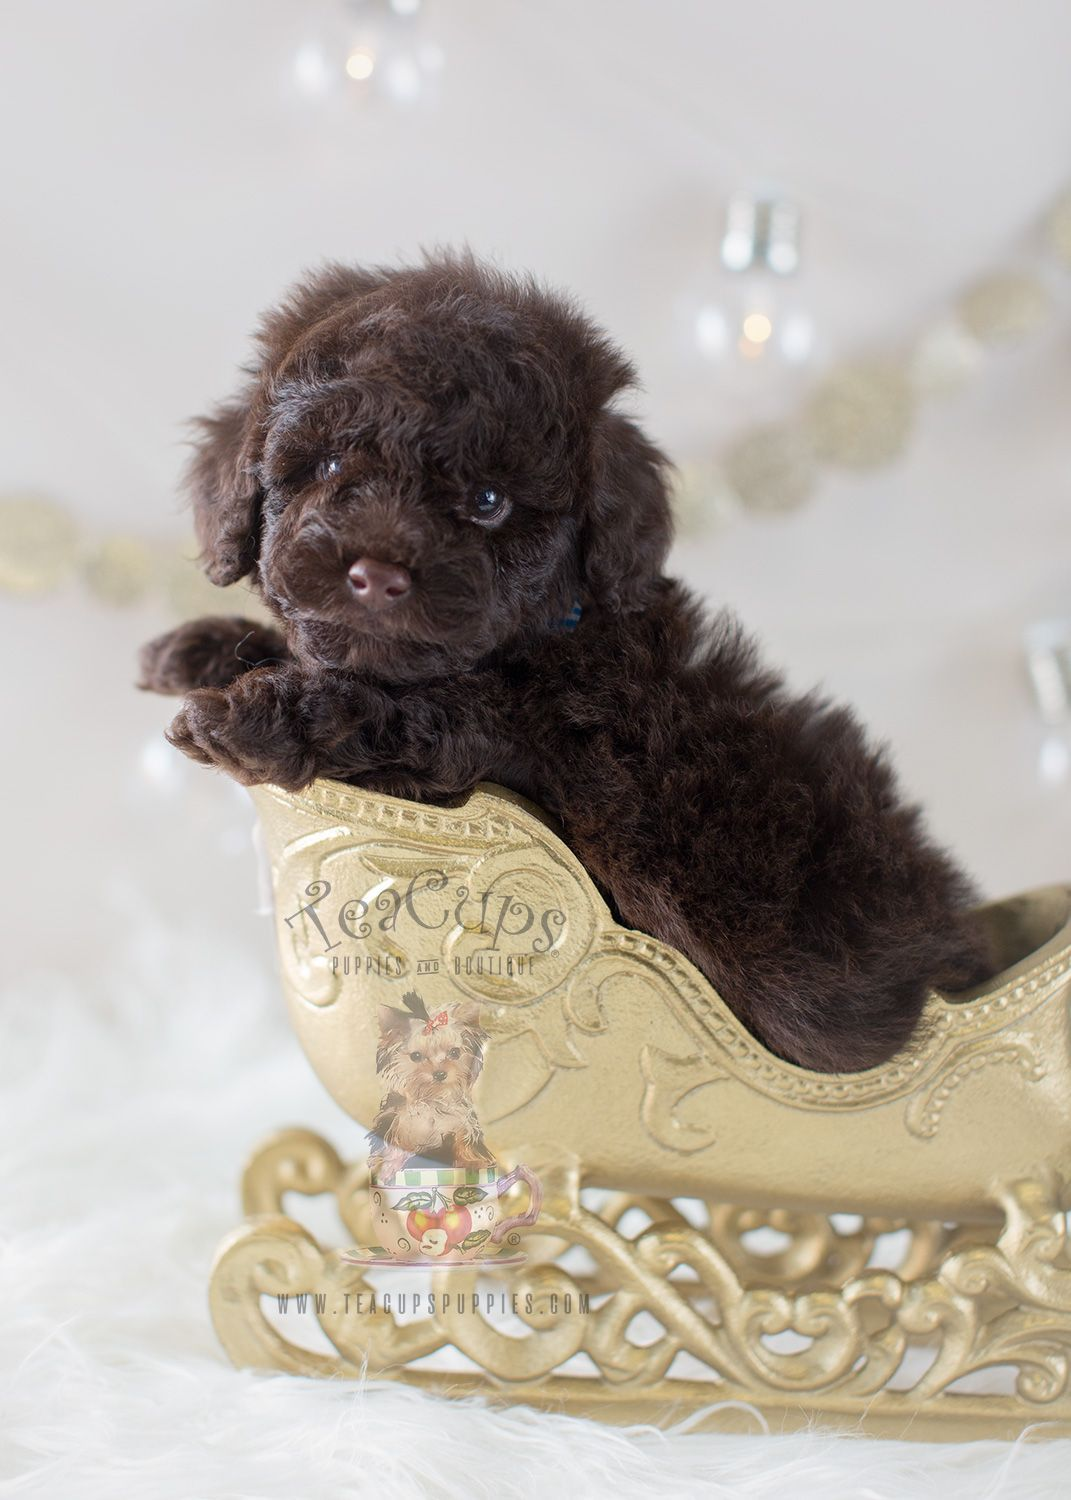 Christmas Puppy Beautiful Chocolate Poodle Puppy By